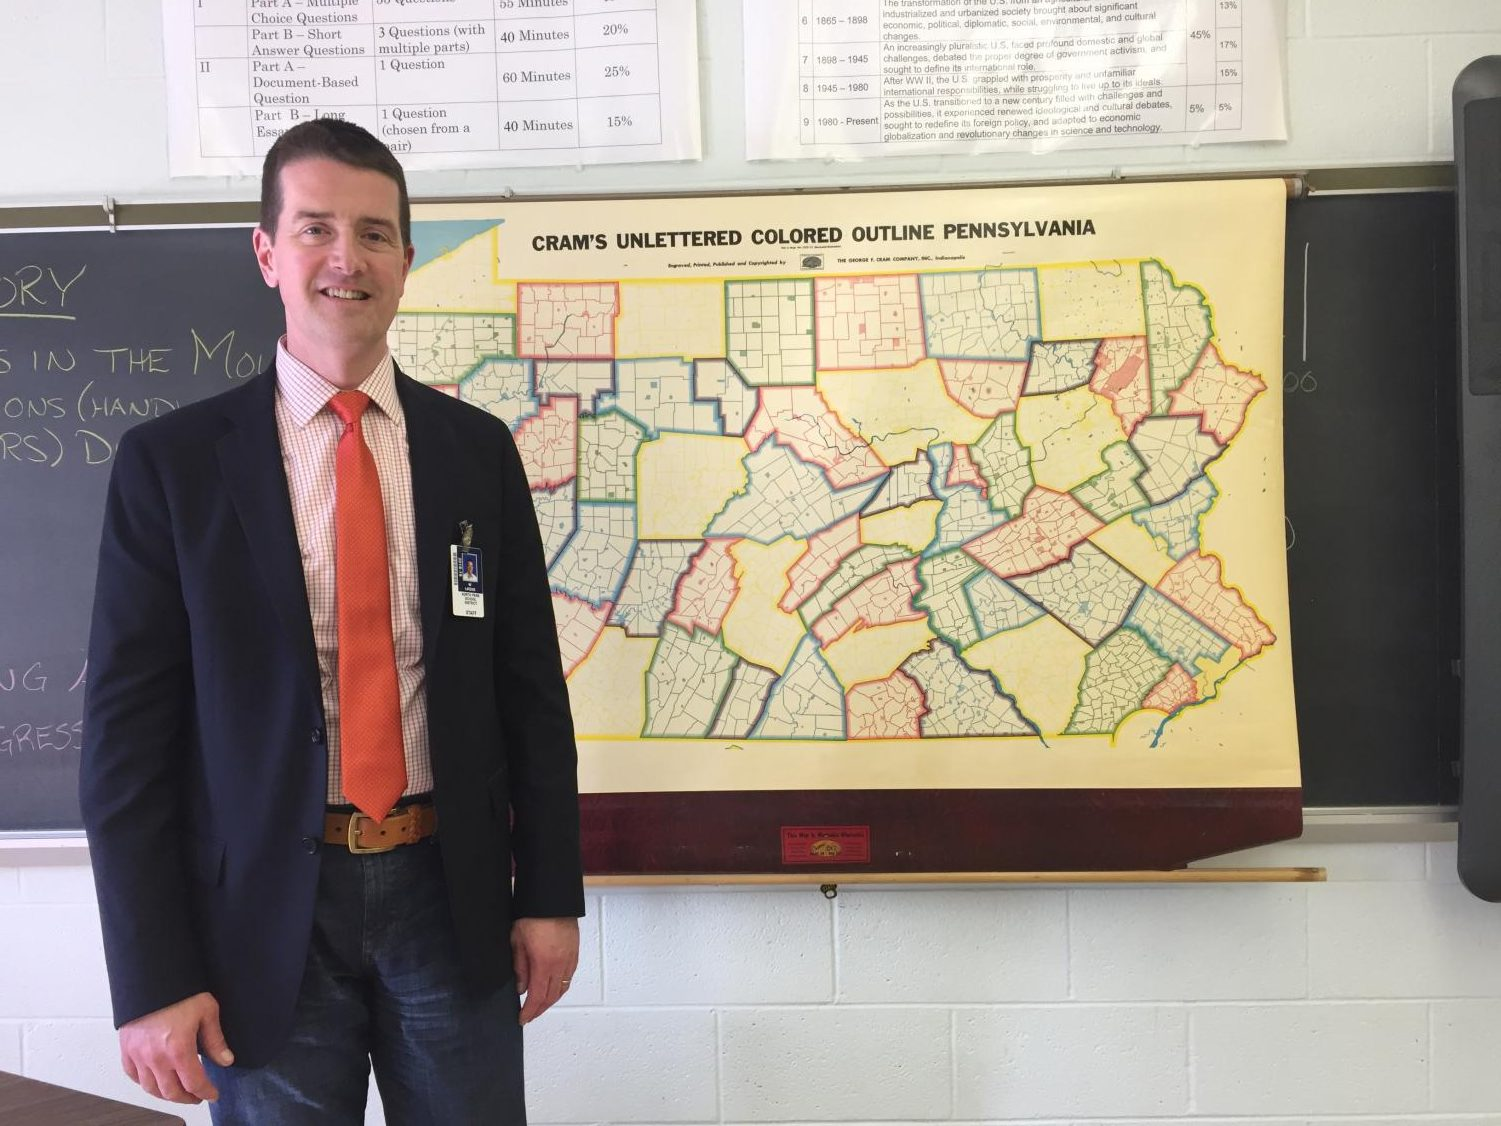 Could it be more fitting? Mr. Colin Likens pictured besides the map of Pennsylvania.